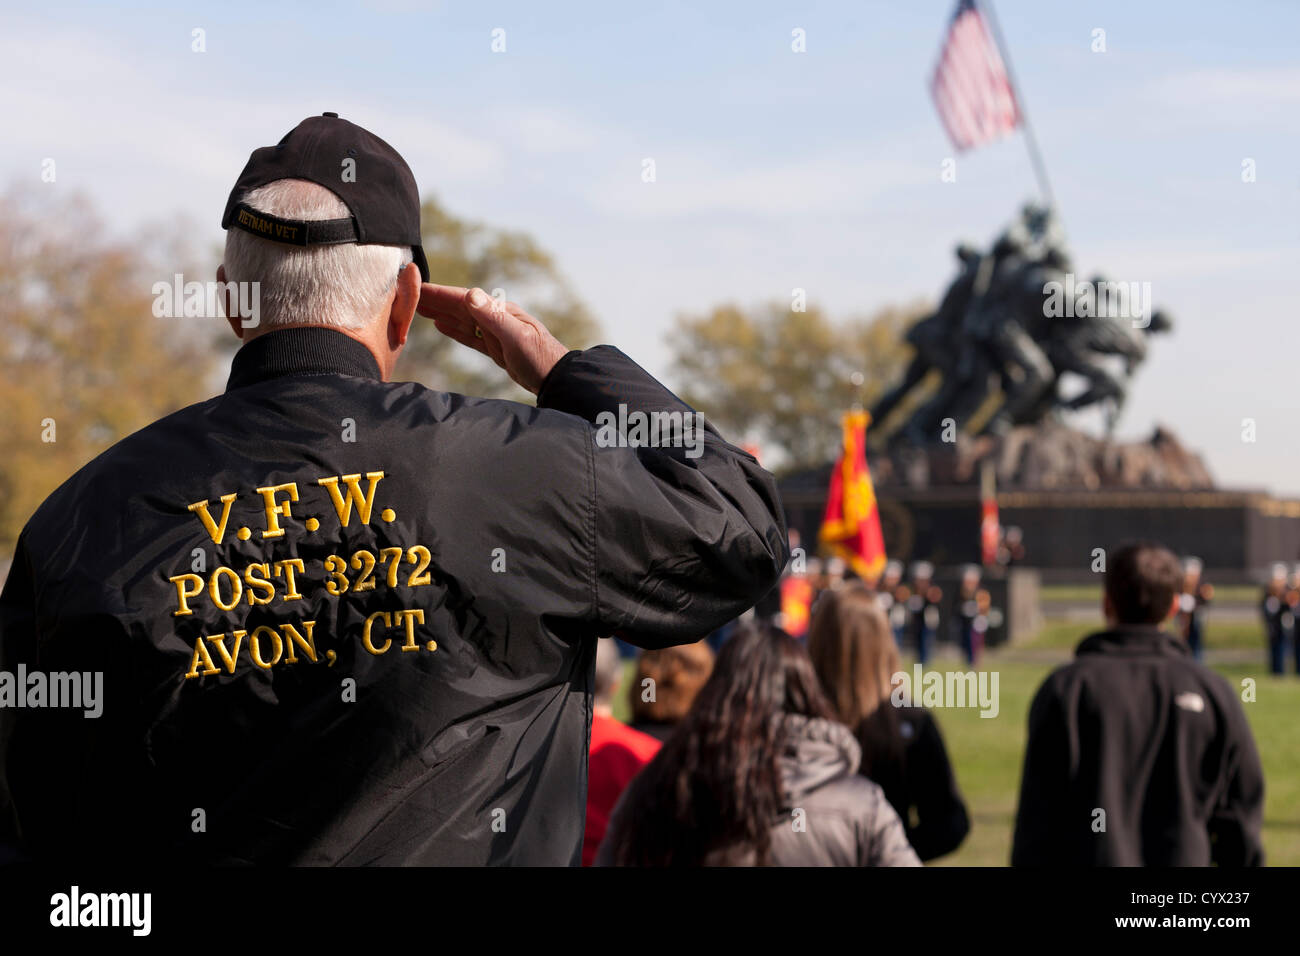 November 10, 2012: During the Veterans Day celebrations, a US Marine Corps veteran salutes the flag in front of - Stock Image